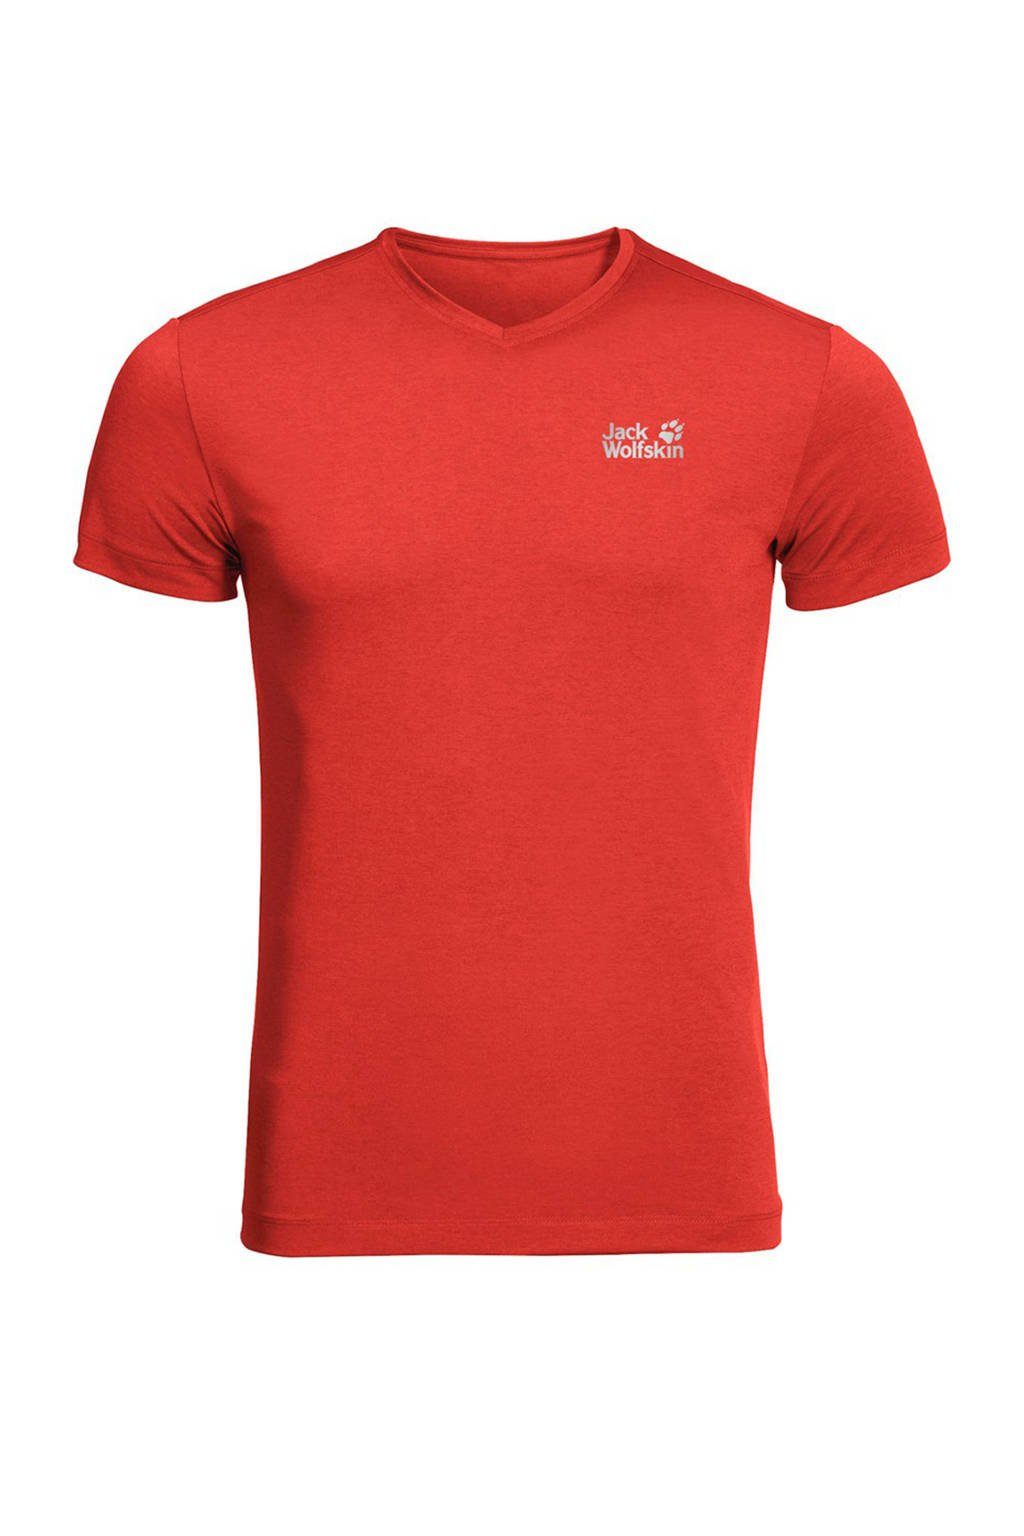 Jack Wolfskin outdoor T-shirt rood, Lava-Red